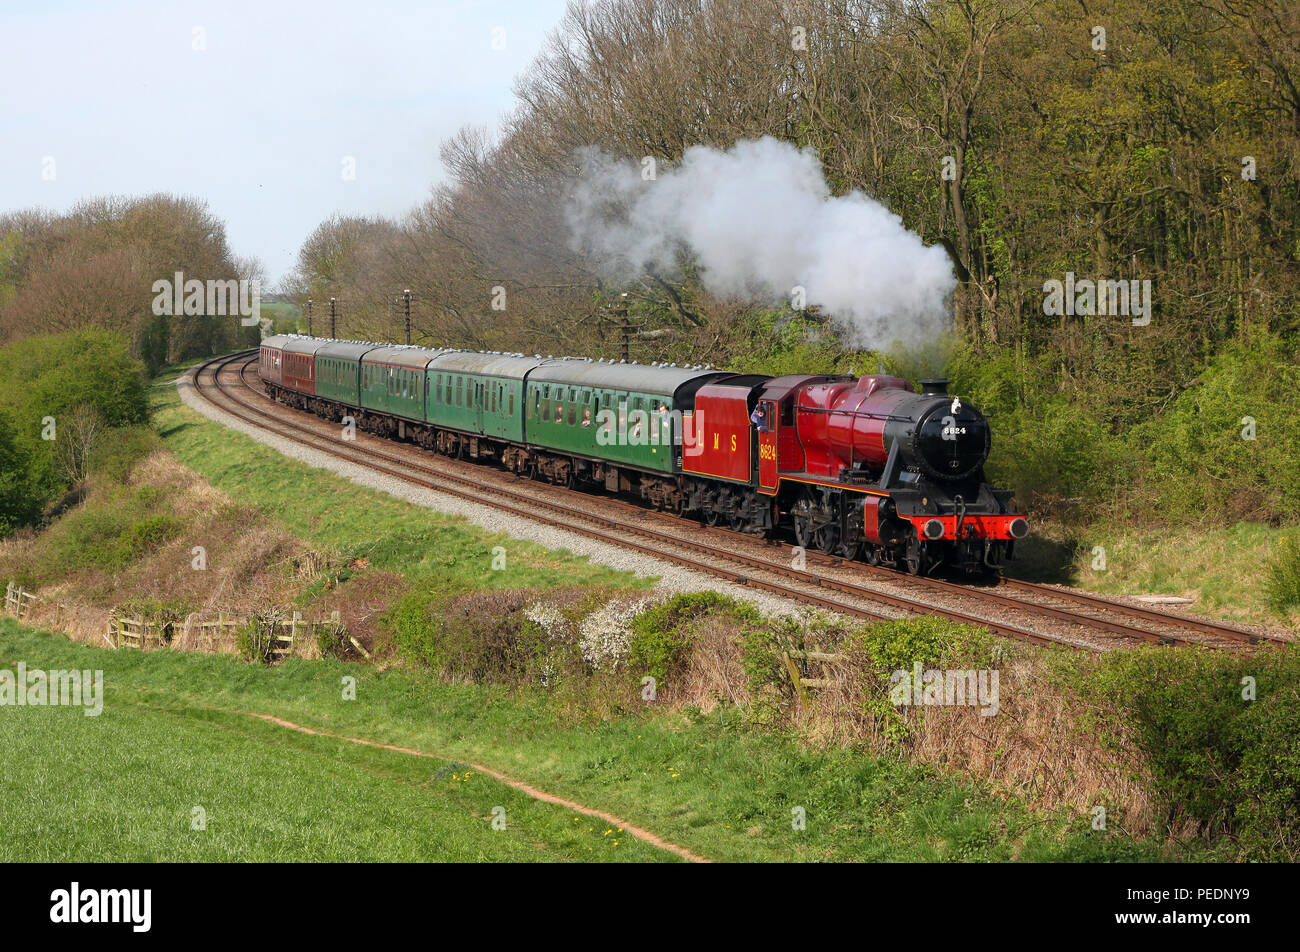 8624 Kinchley lane 1on the GCR 0.4.11 - Stock Image